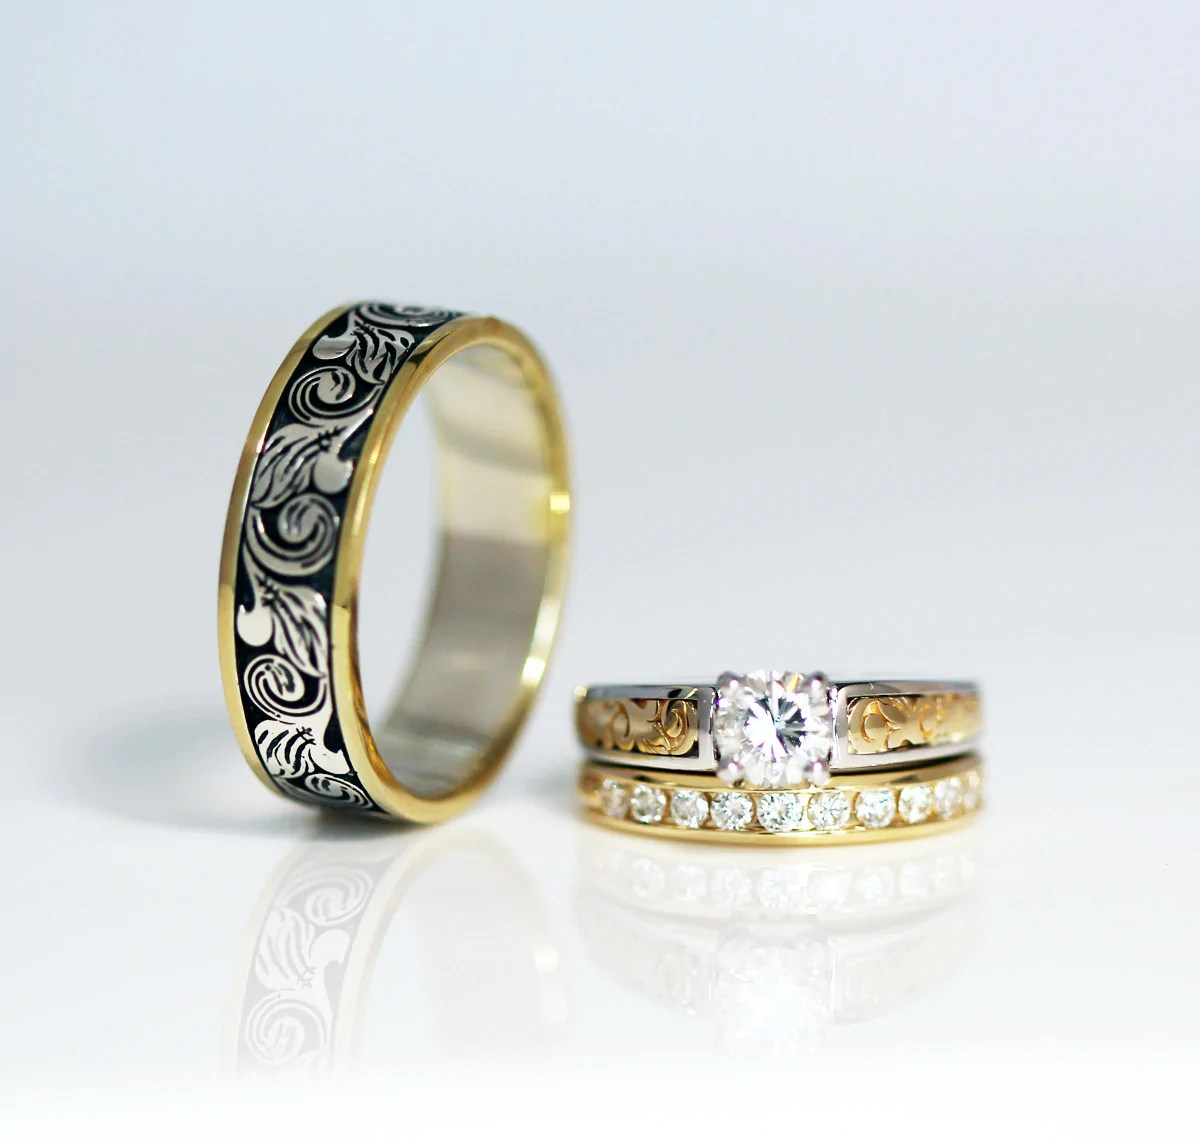 vintage engraved two toned wedding band engraved wedding bands Vintage Engraved Two Tone Wedding Band